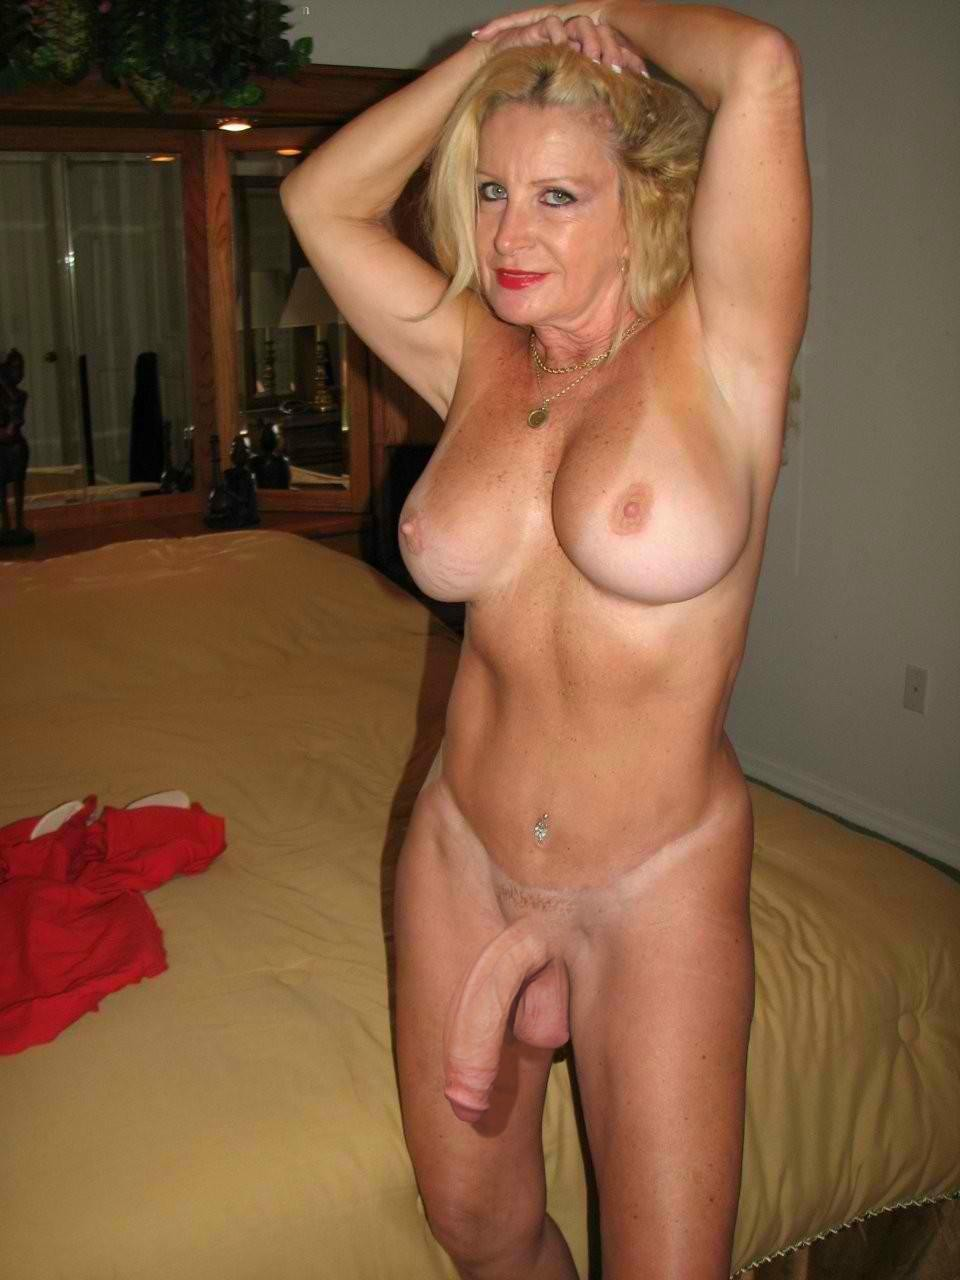 Mingo junction milf women